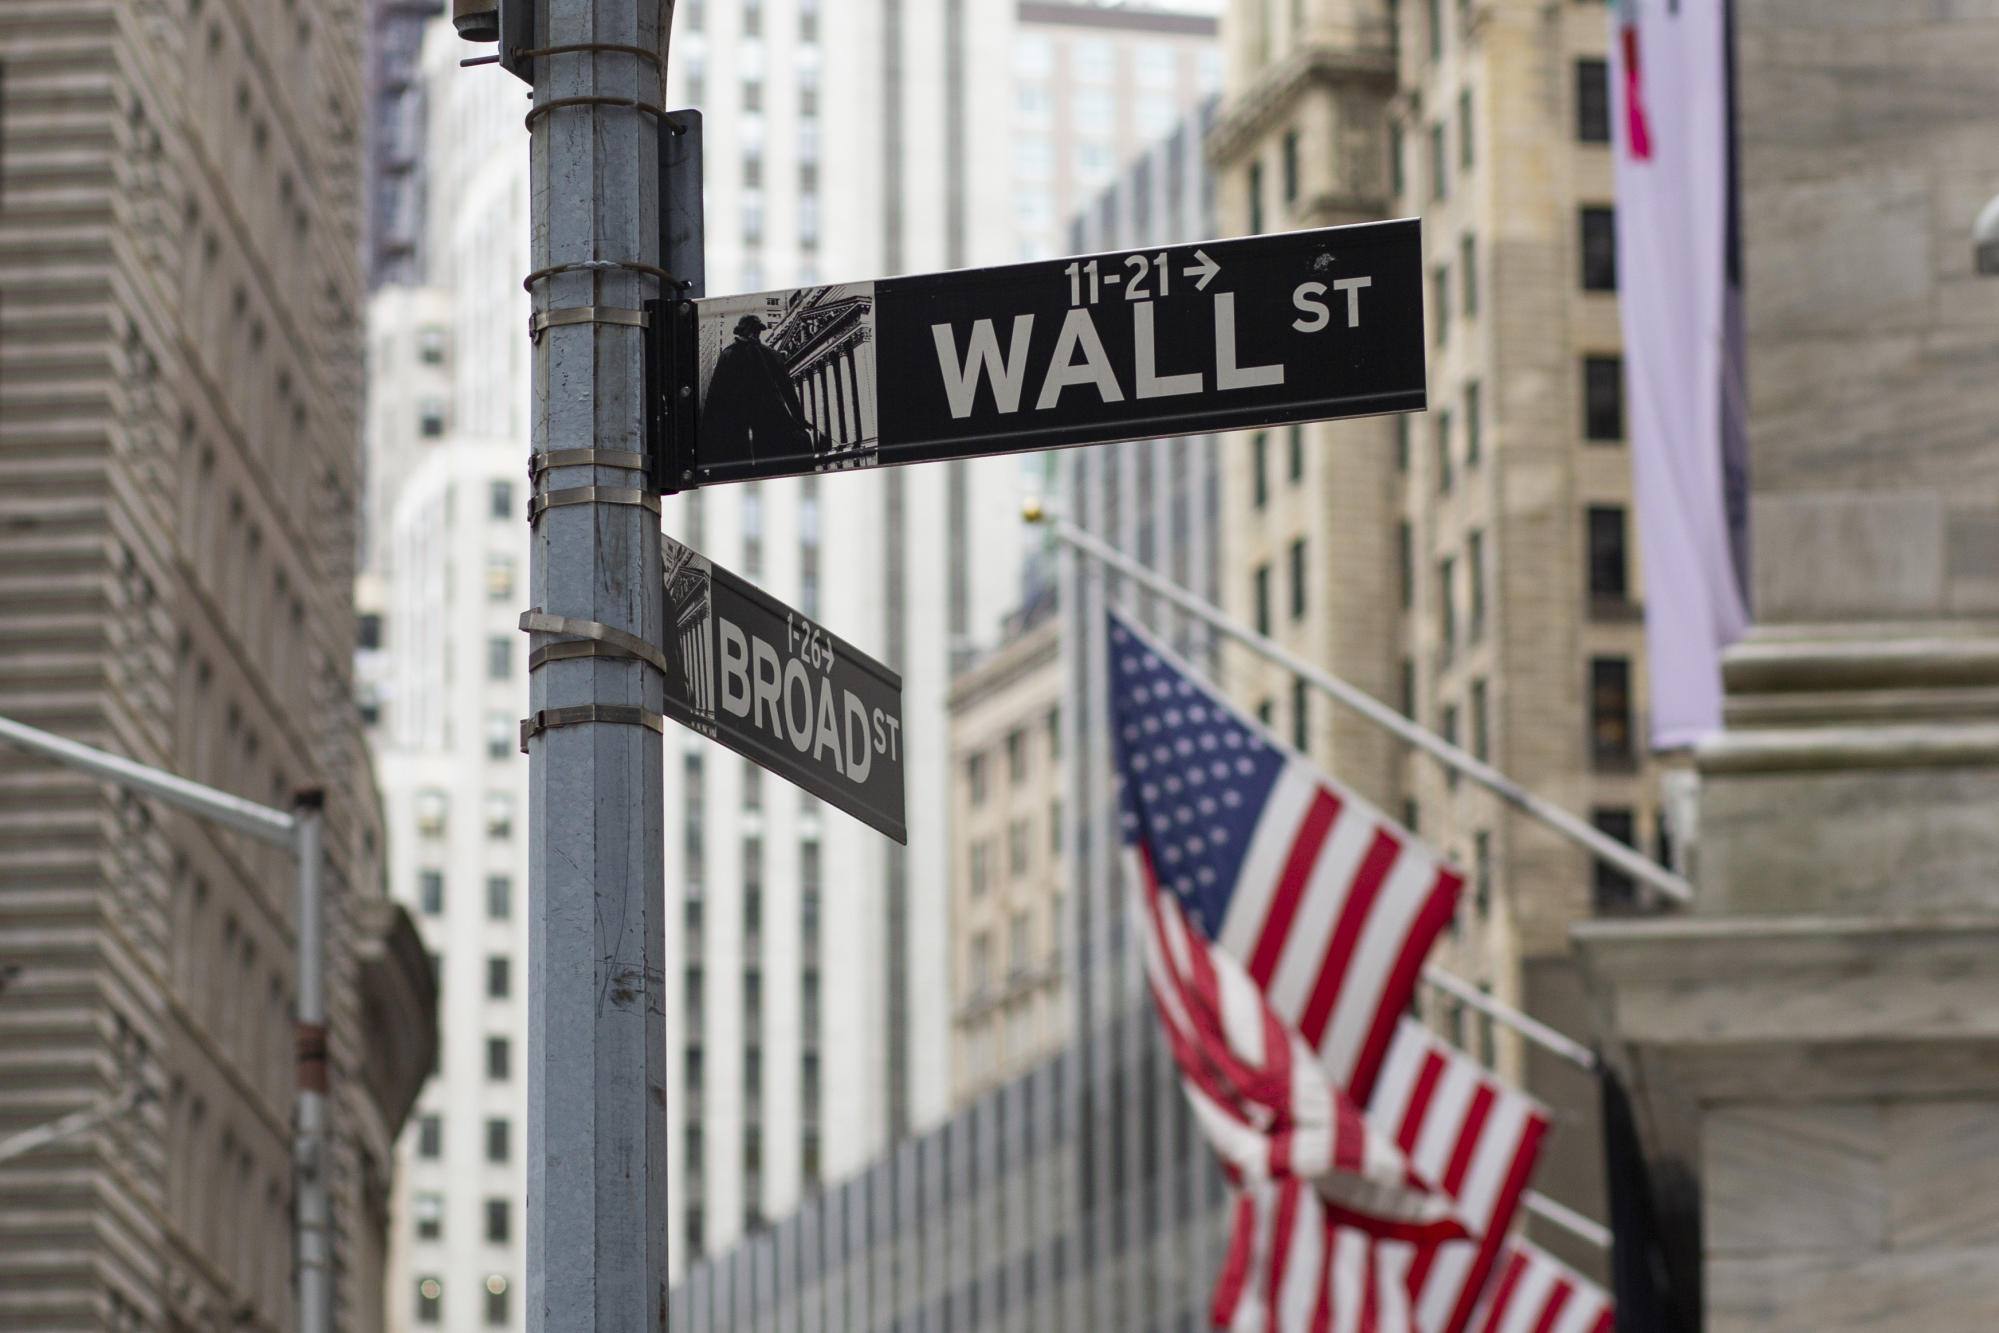 Stock market news live updates: Stocks lose steam in final stretch of trading, Dow closes lower by 153 points, or 0.4% -